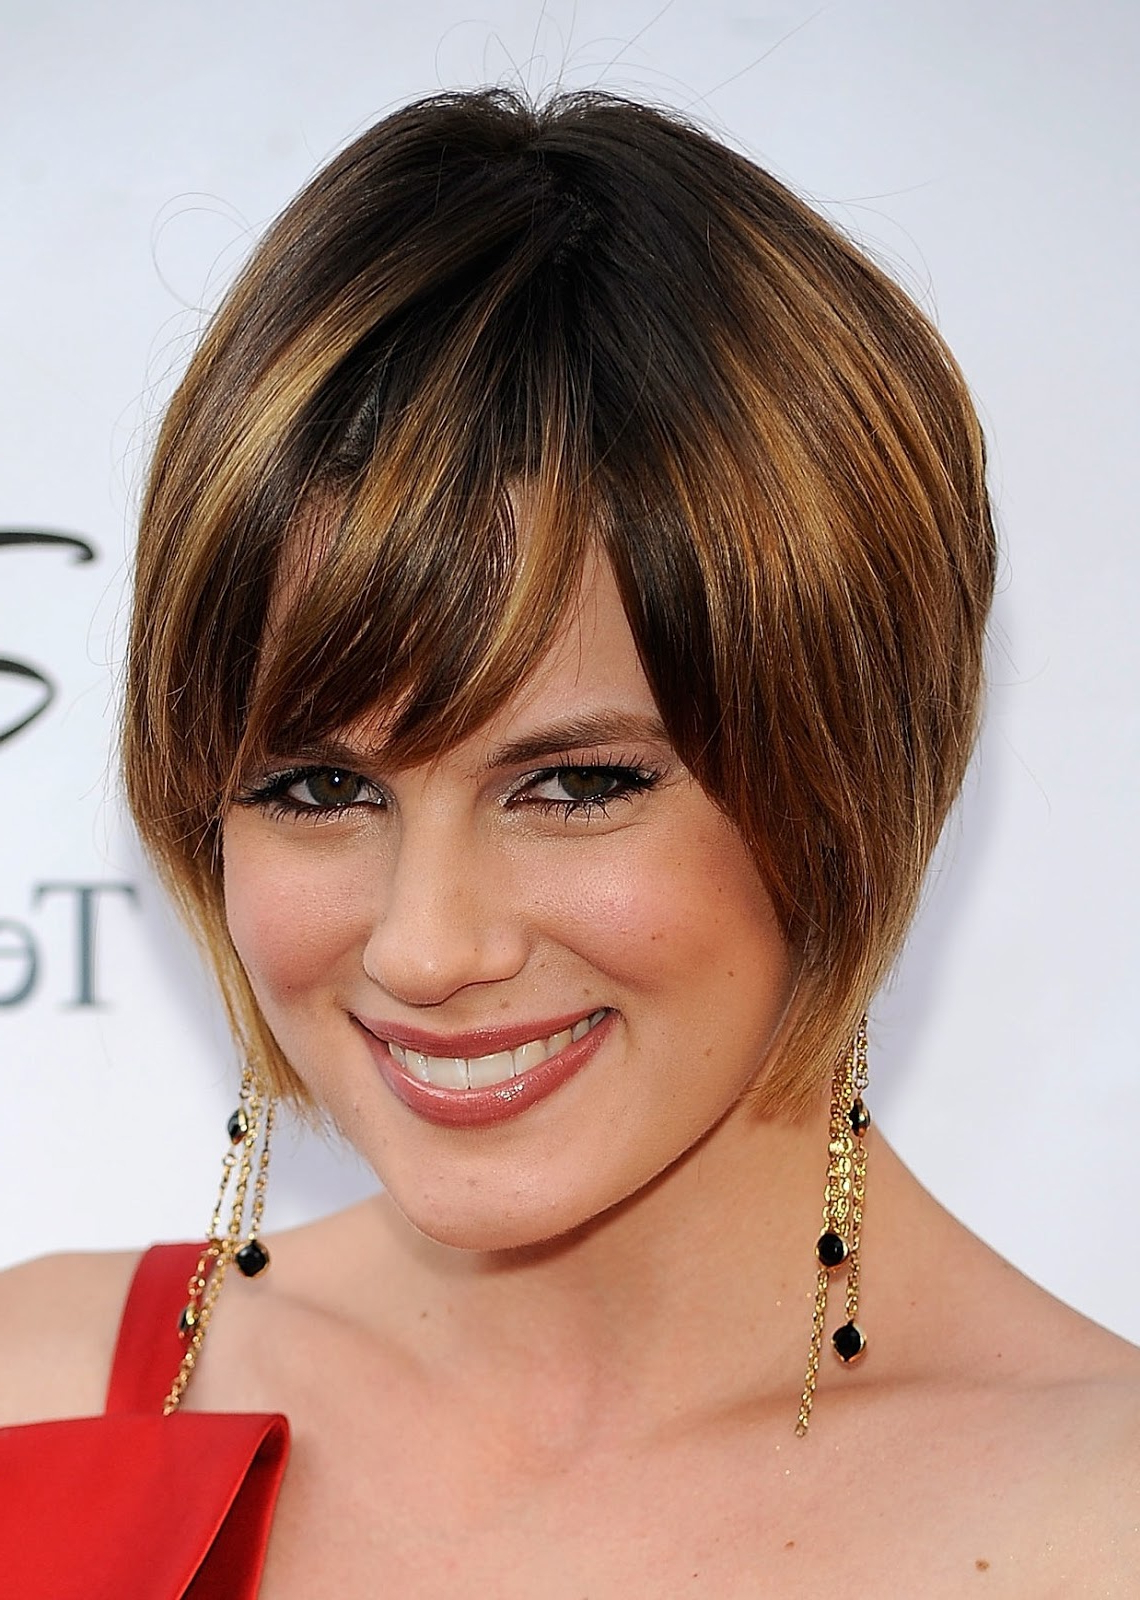 Inverted Short Bob Haircuts Pertaining To Inverted Short Haircuts (View 16 of 25)